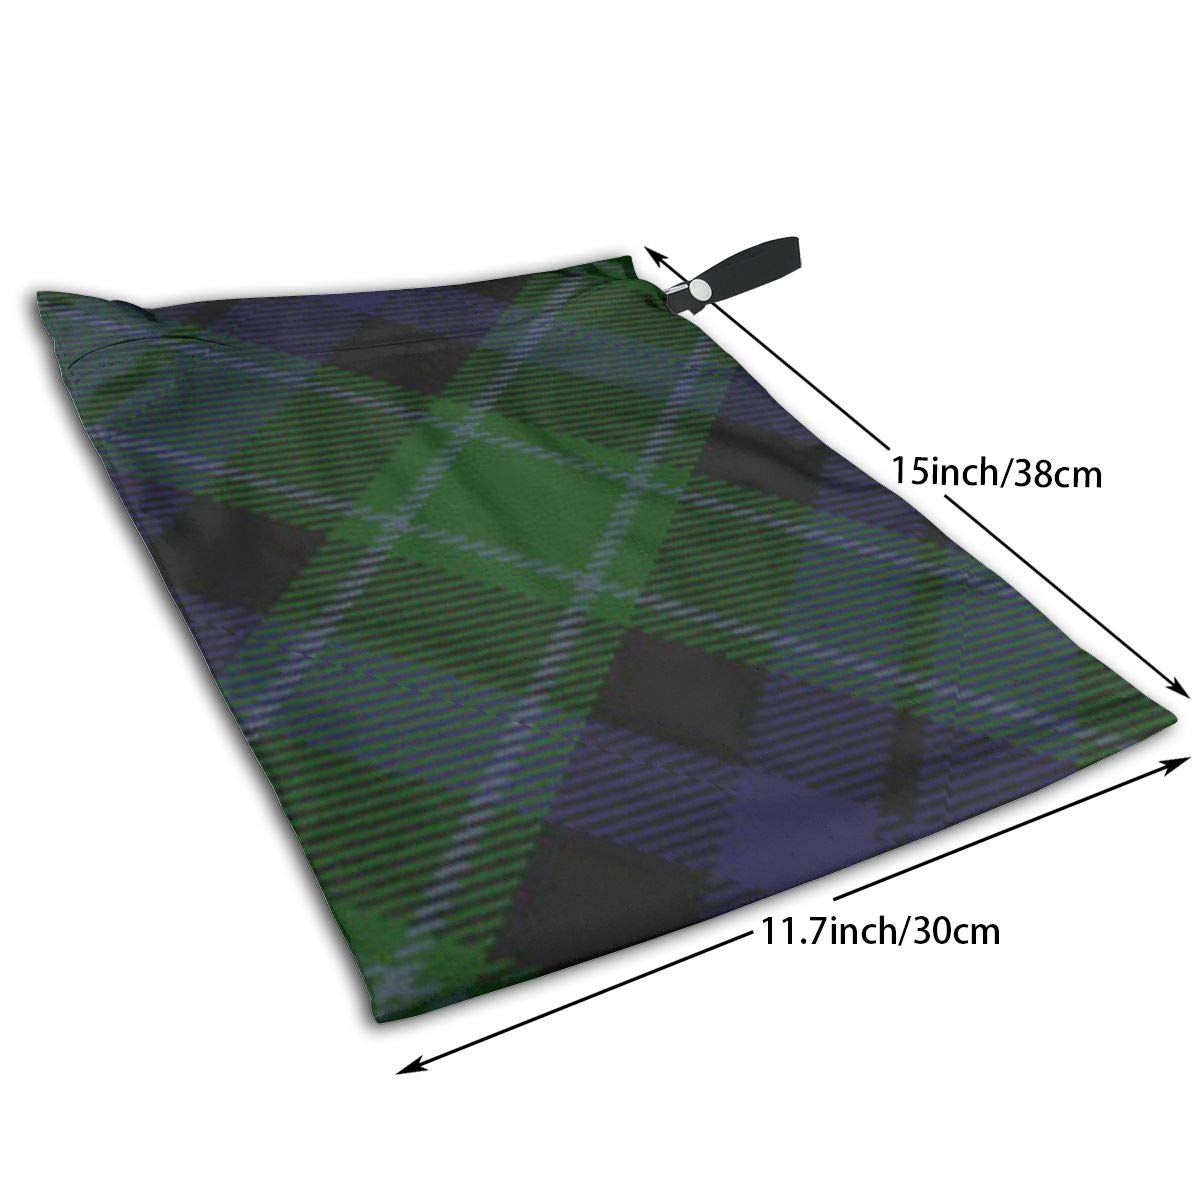 Scottish Clan Graham Mentieth Tartan Tote Travel Accessories Size Happens Reusable Laundry Beach Toddler Dry Bag for Workout Swim Wet Kid Baby Gym Clothes Cloth Diaper Wetbag